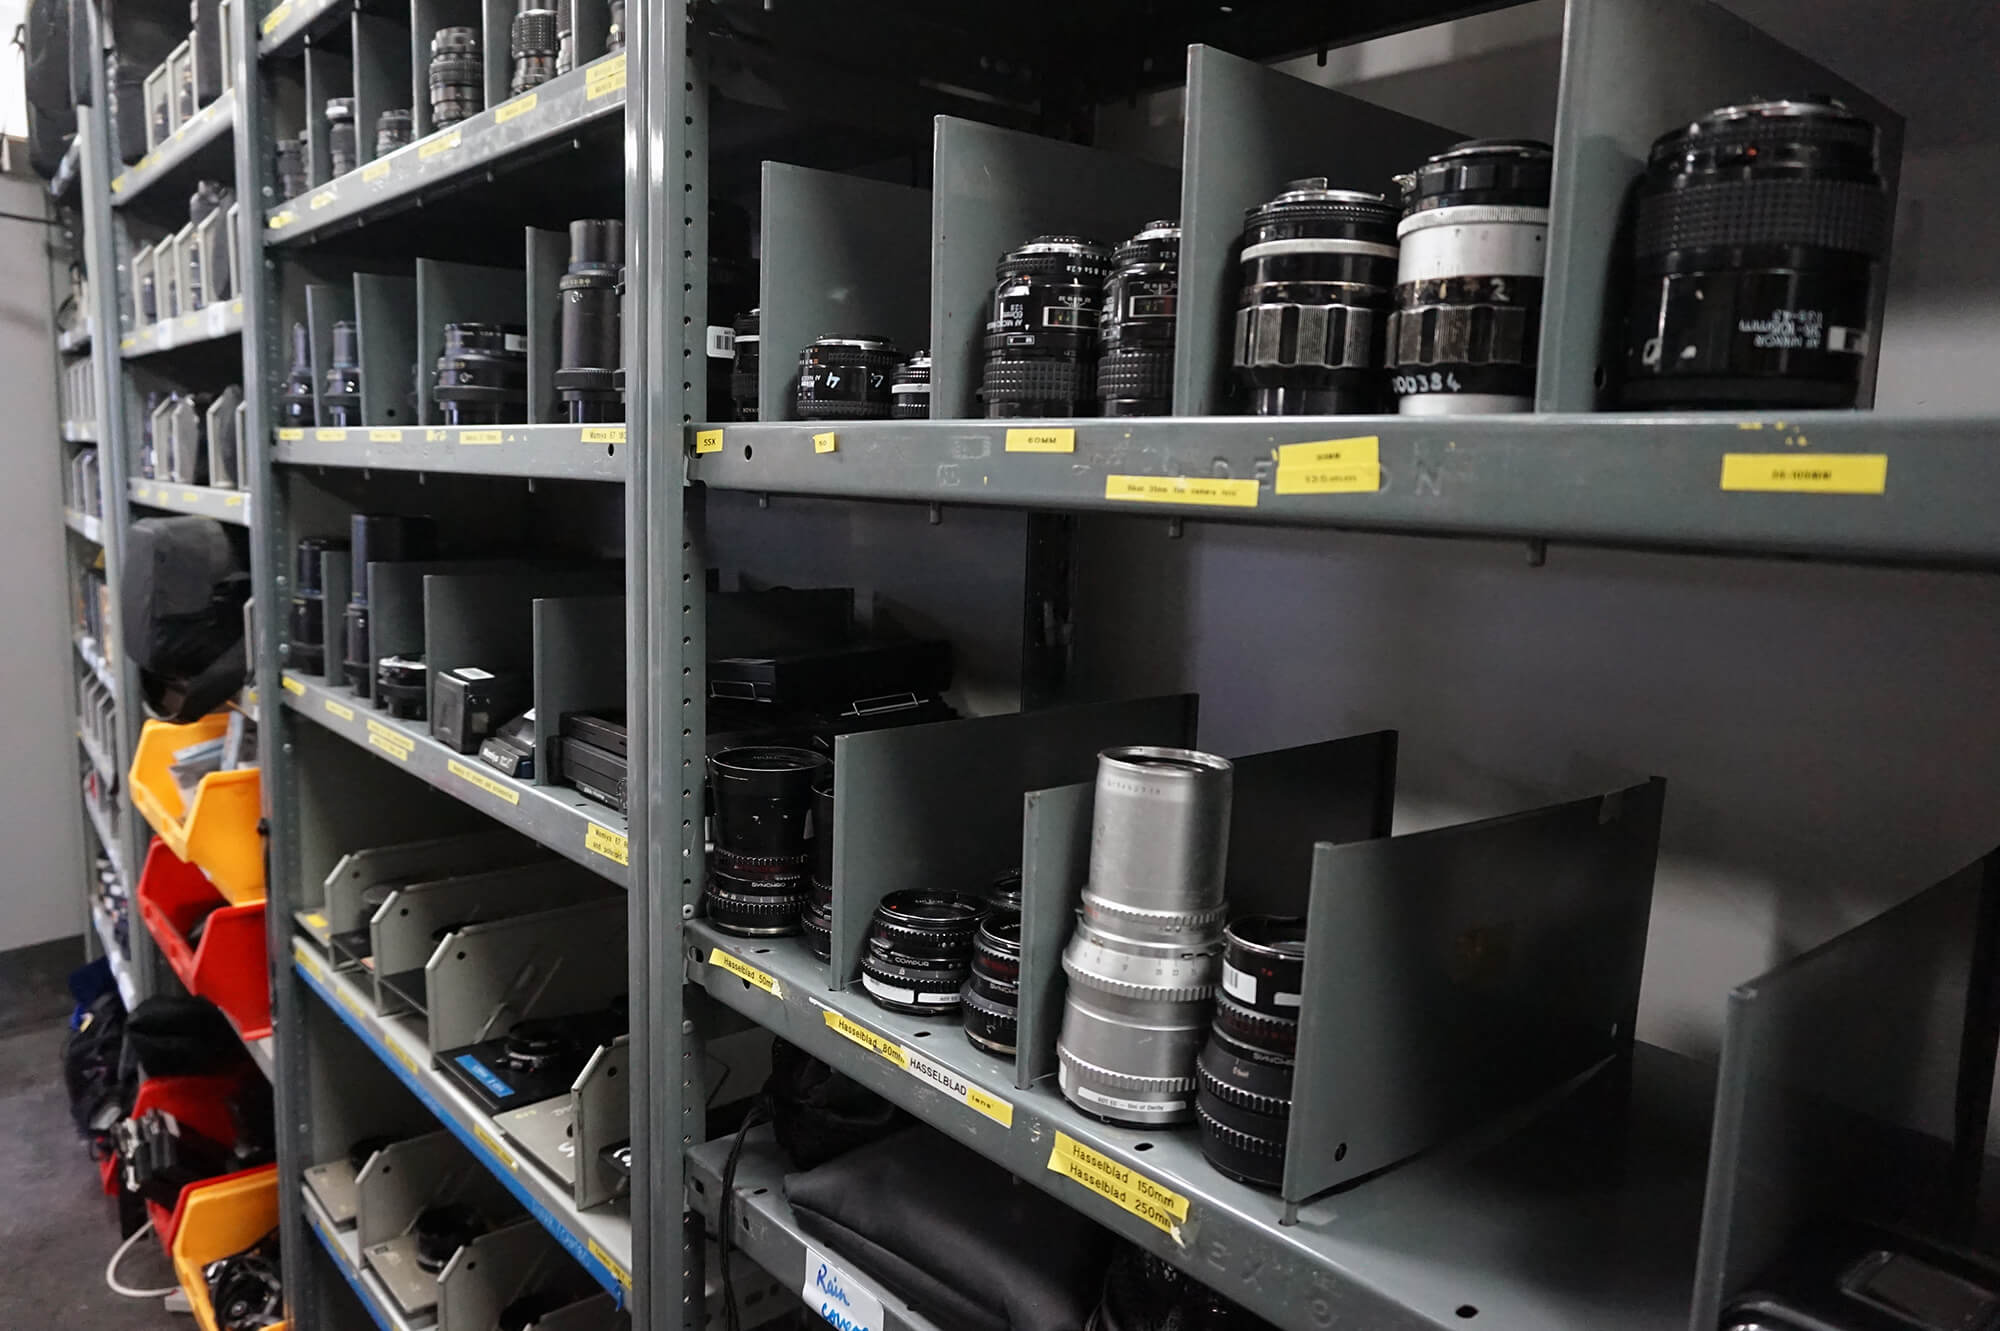 Camera lenses available from the Media Loan Hub